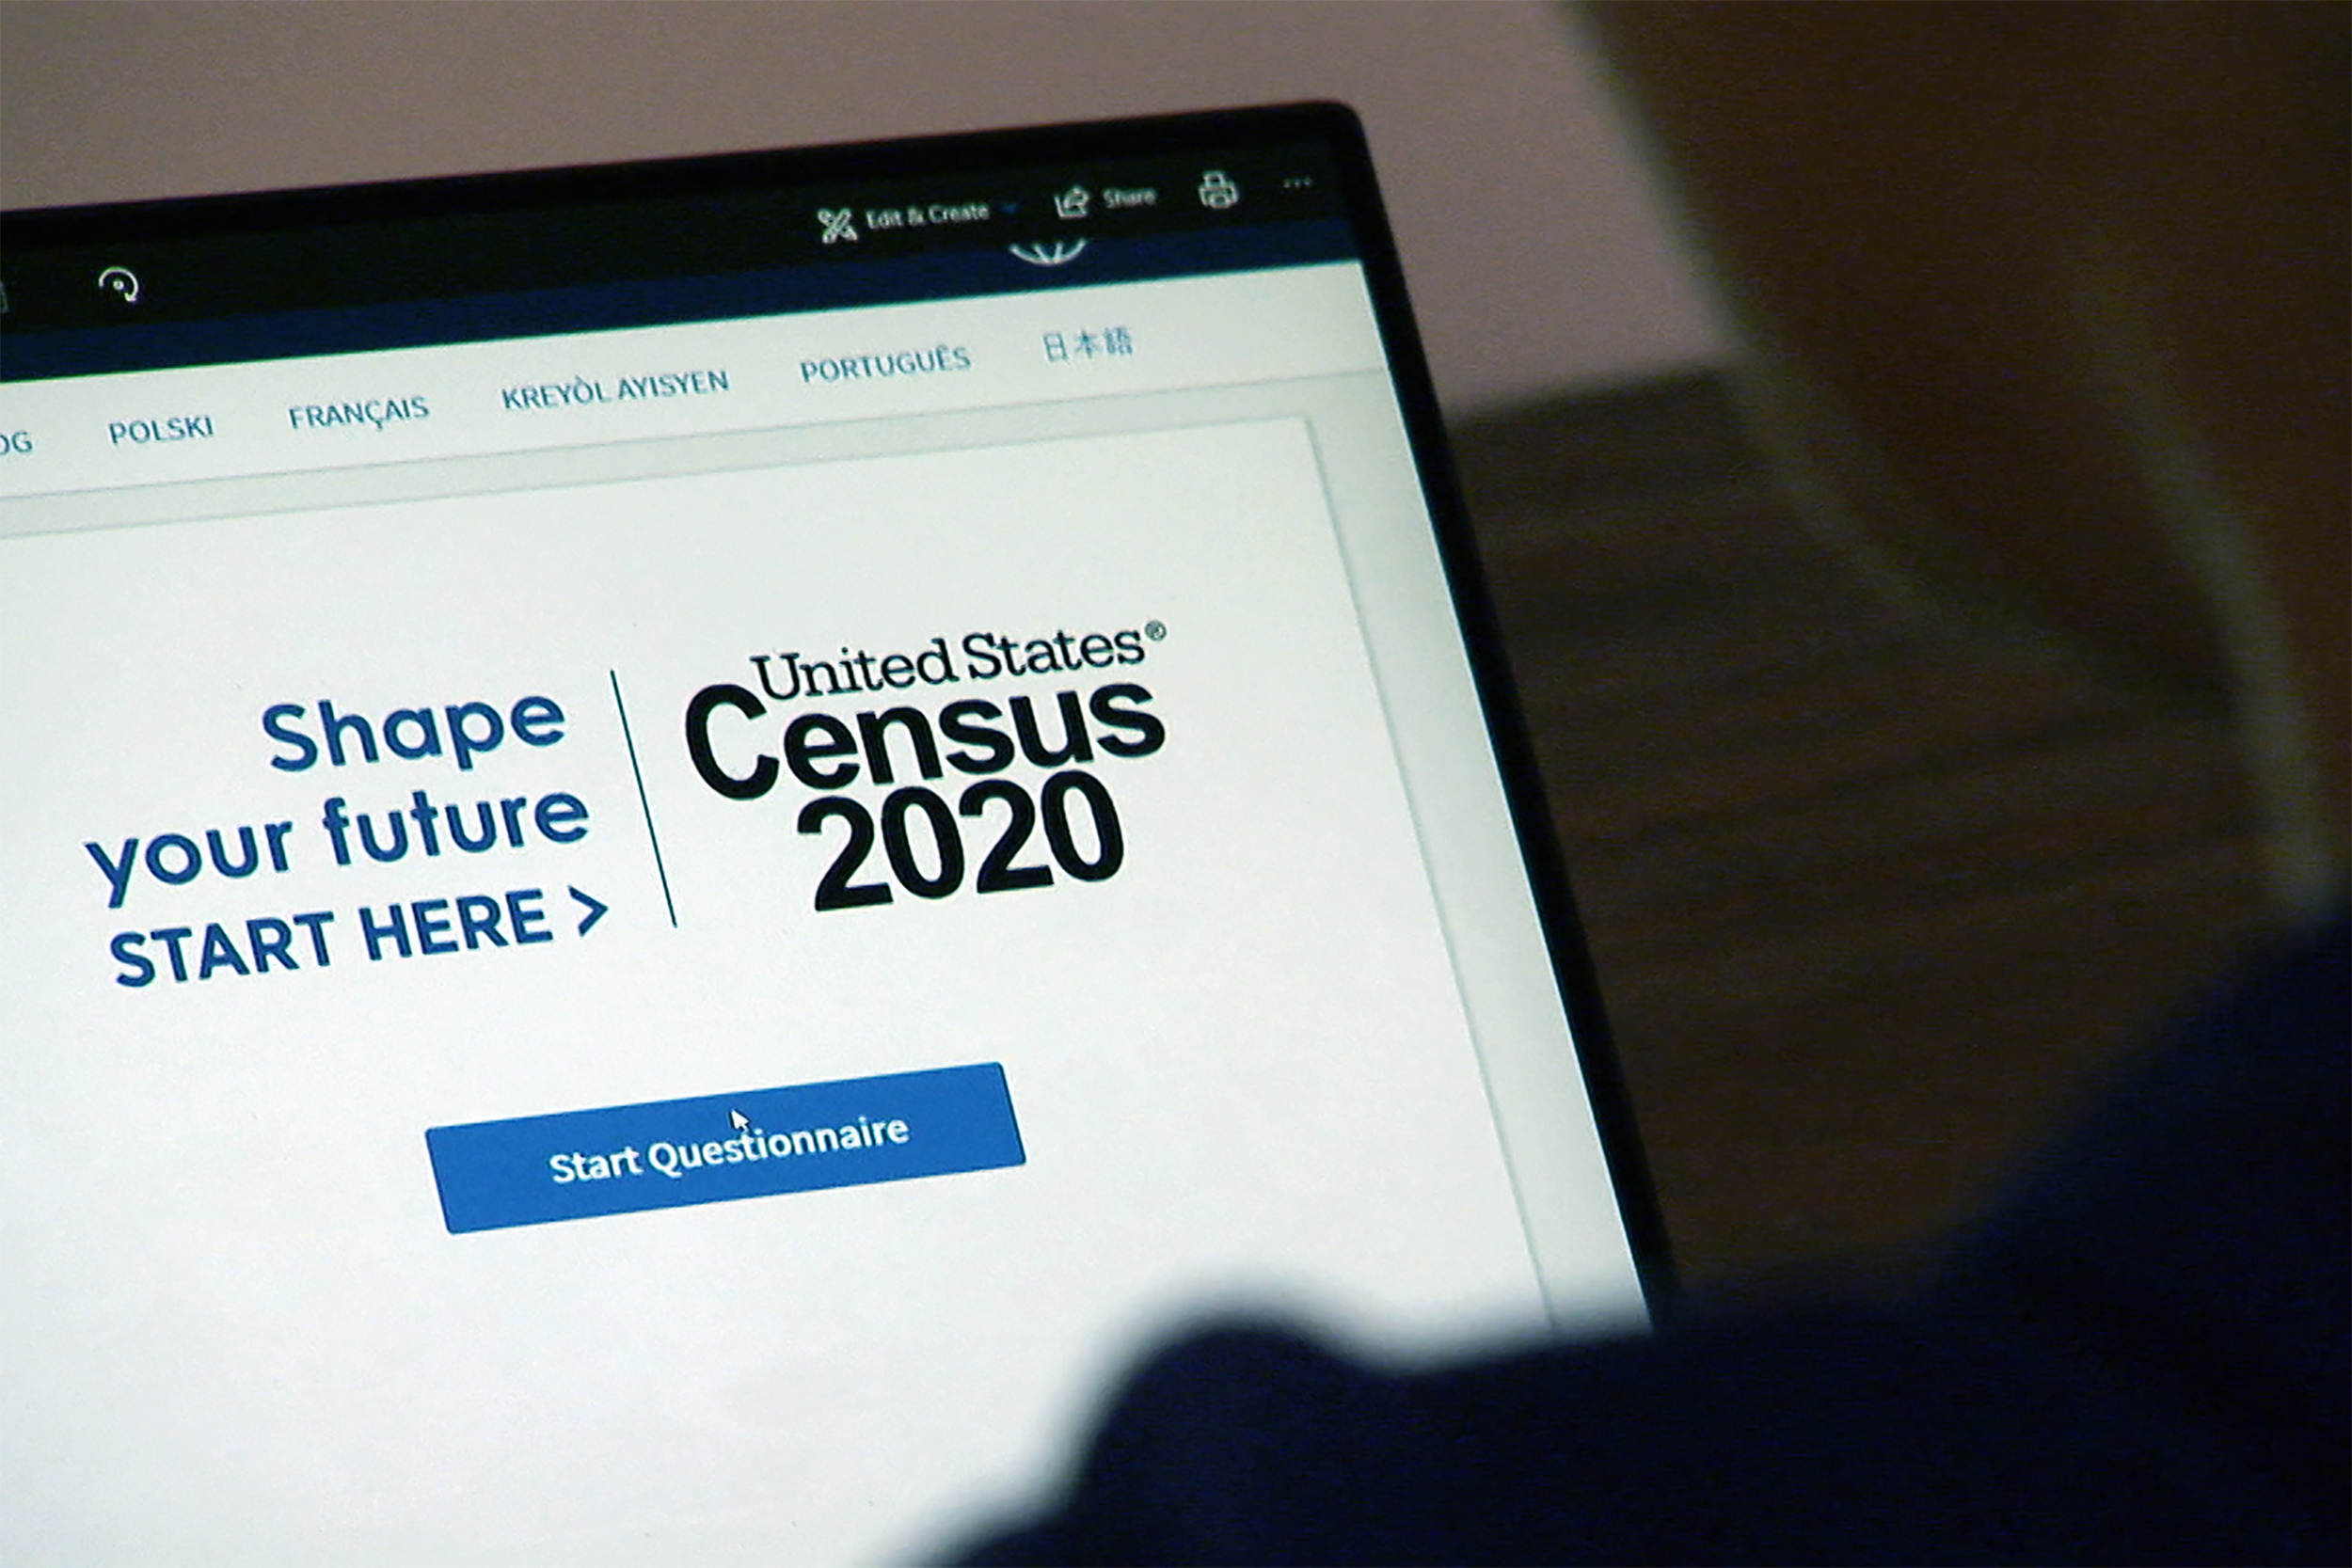 Census hit by cyberattack, but U.S. count unaffected, watchdog says